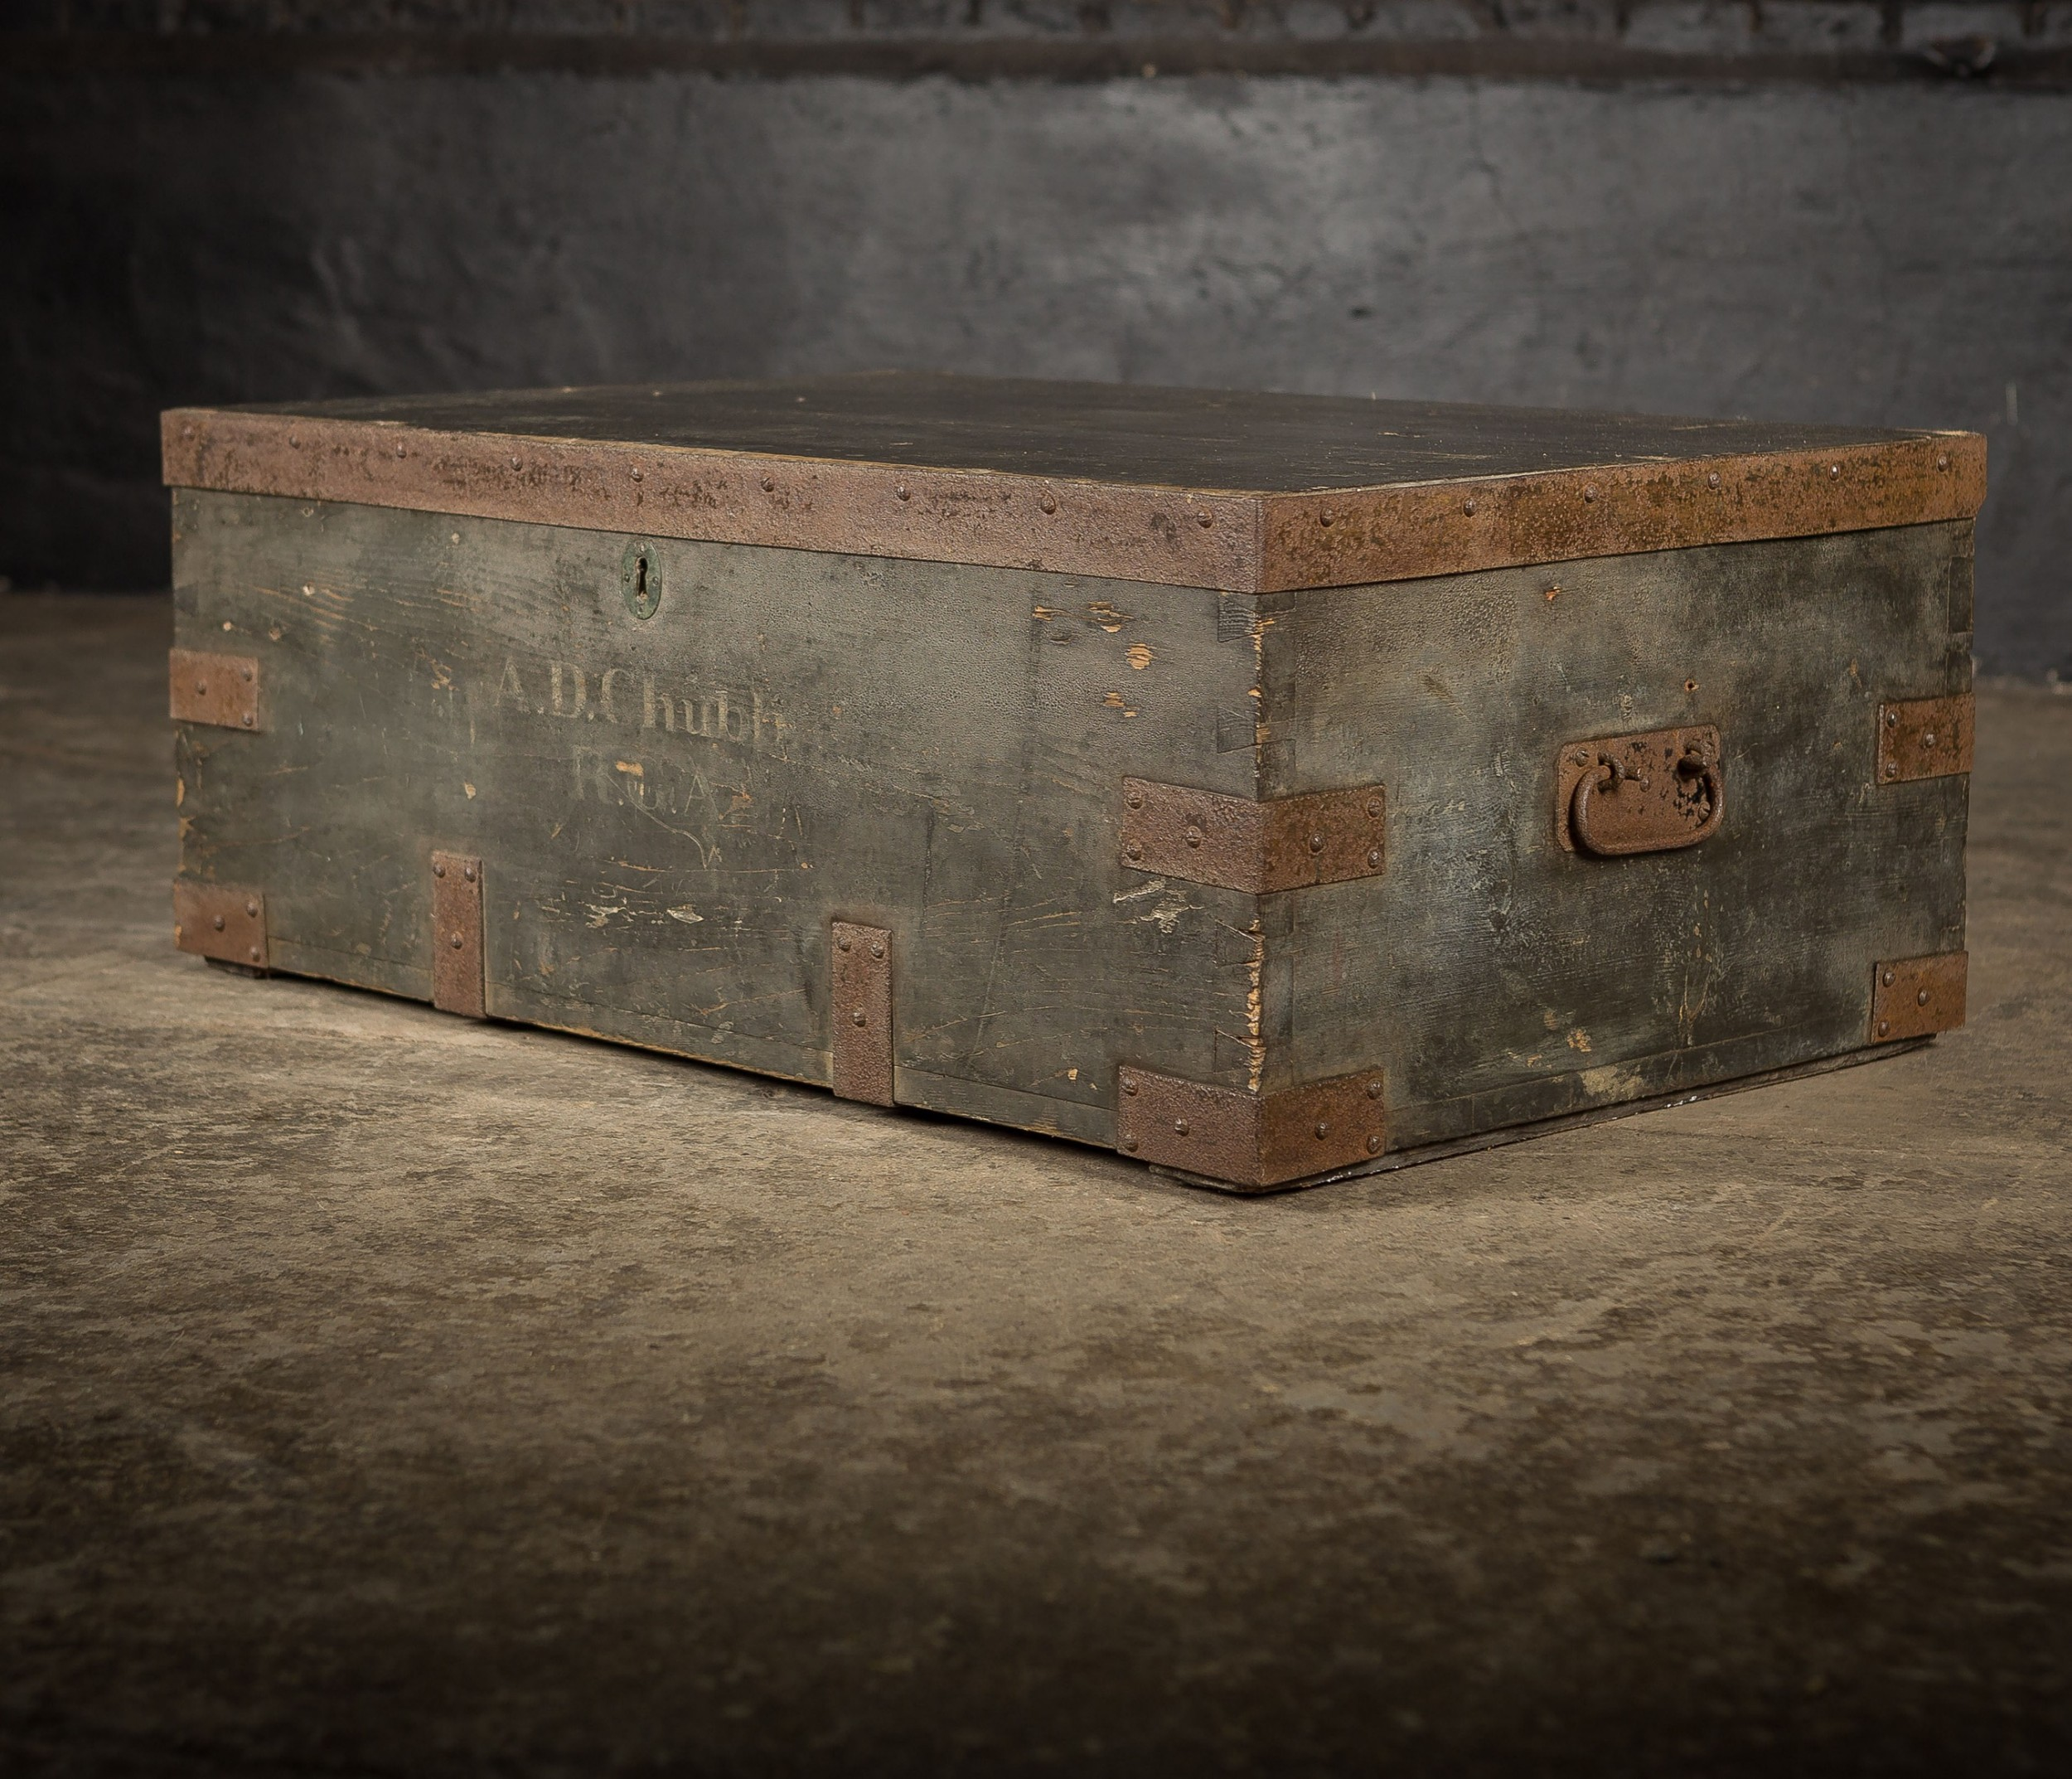 19th c royal regiment wooden truck chest with ad chubb rca monogram